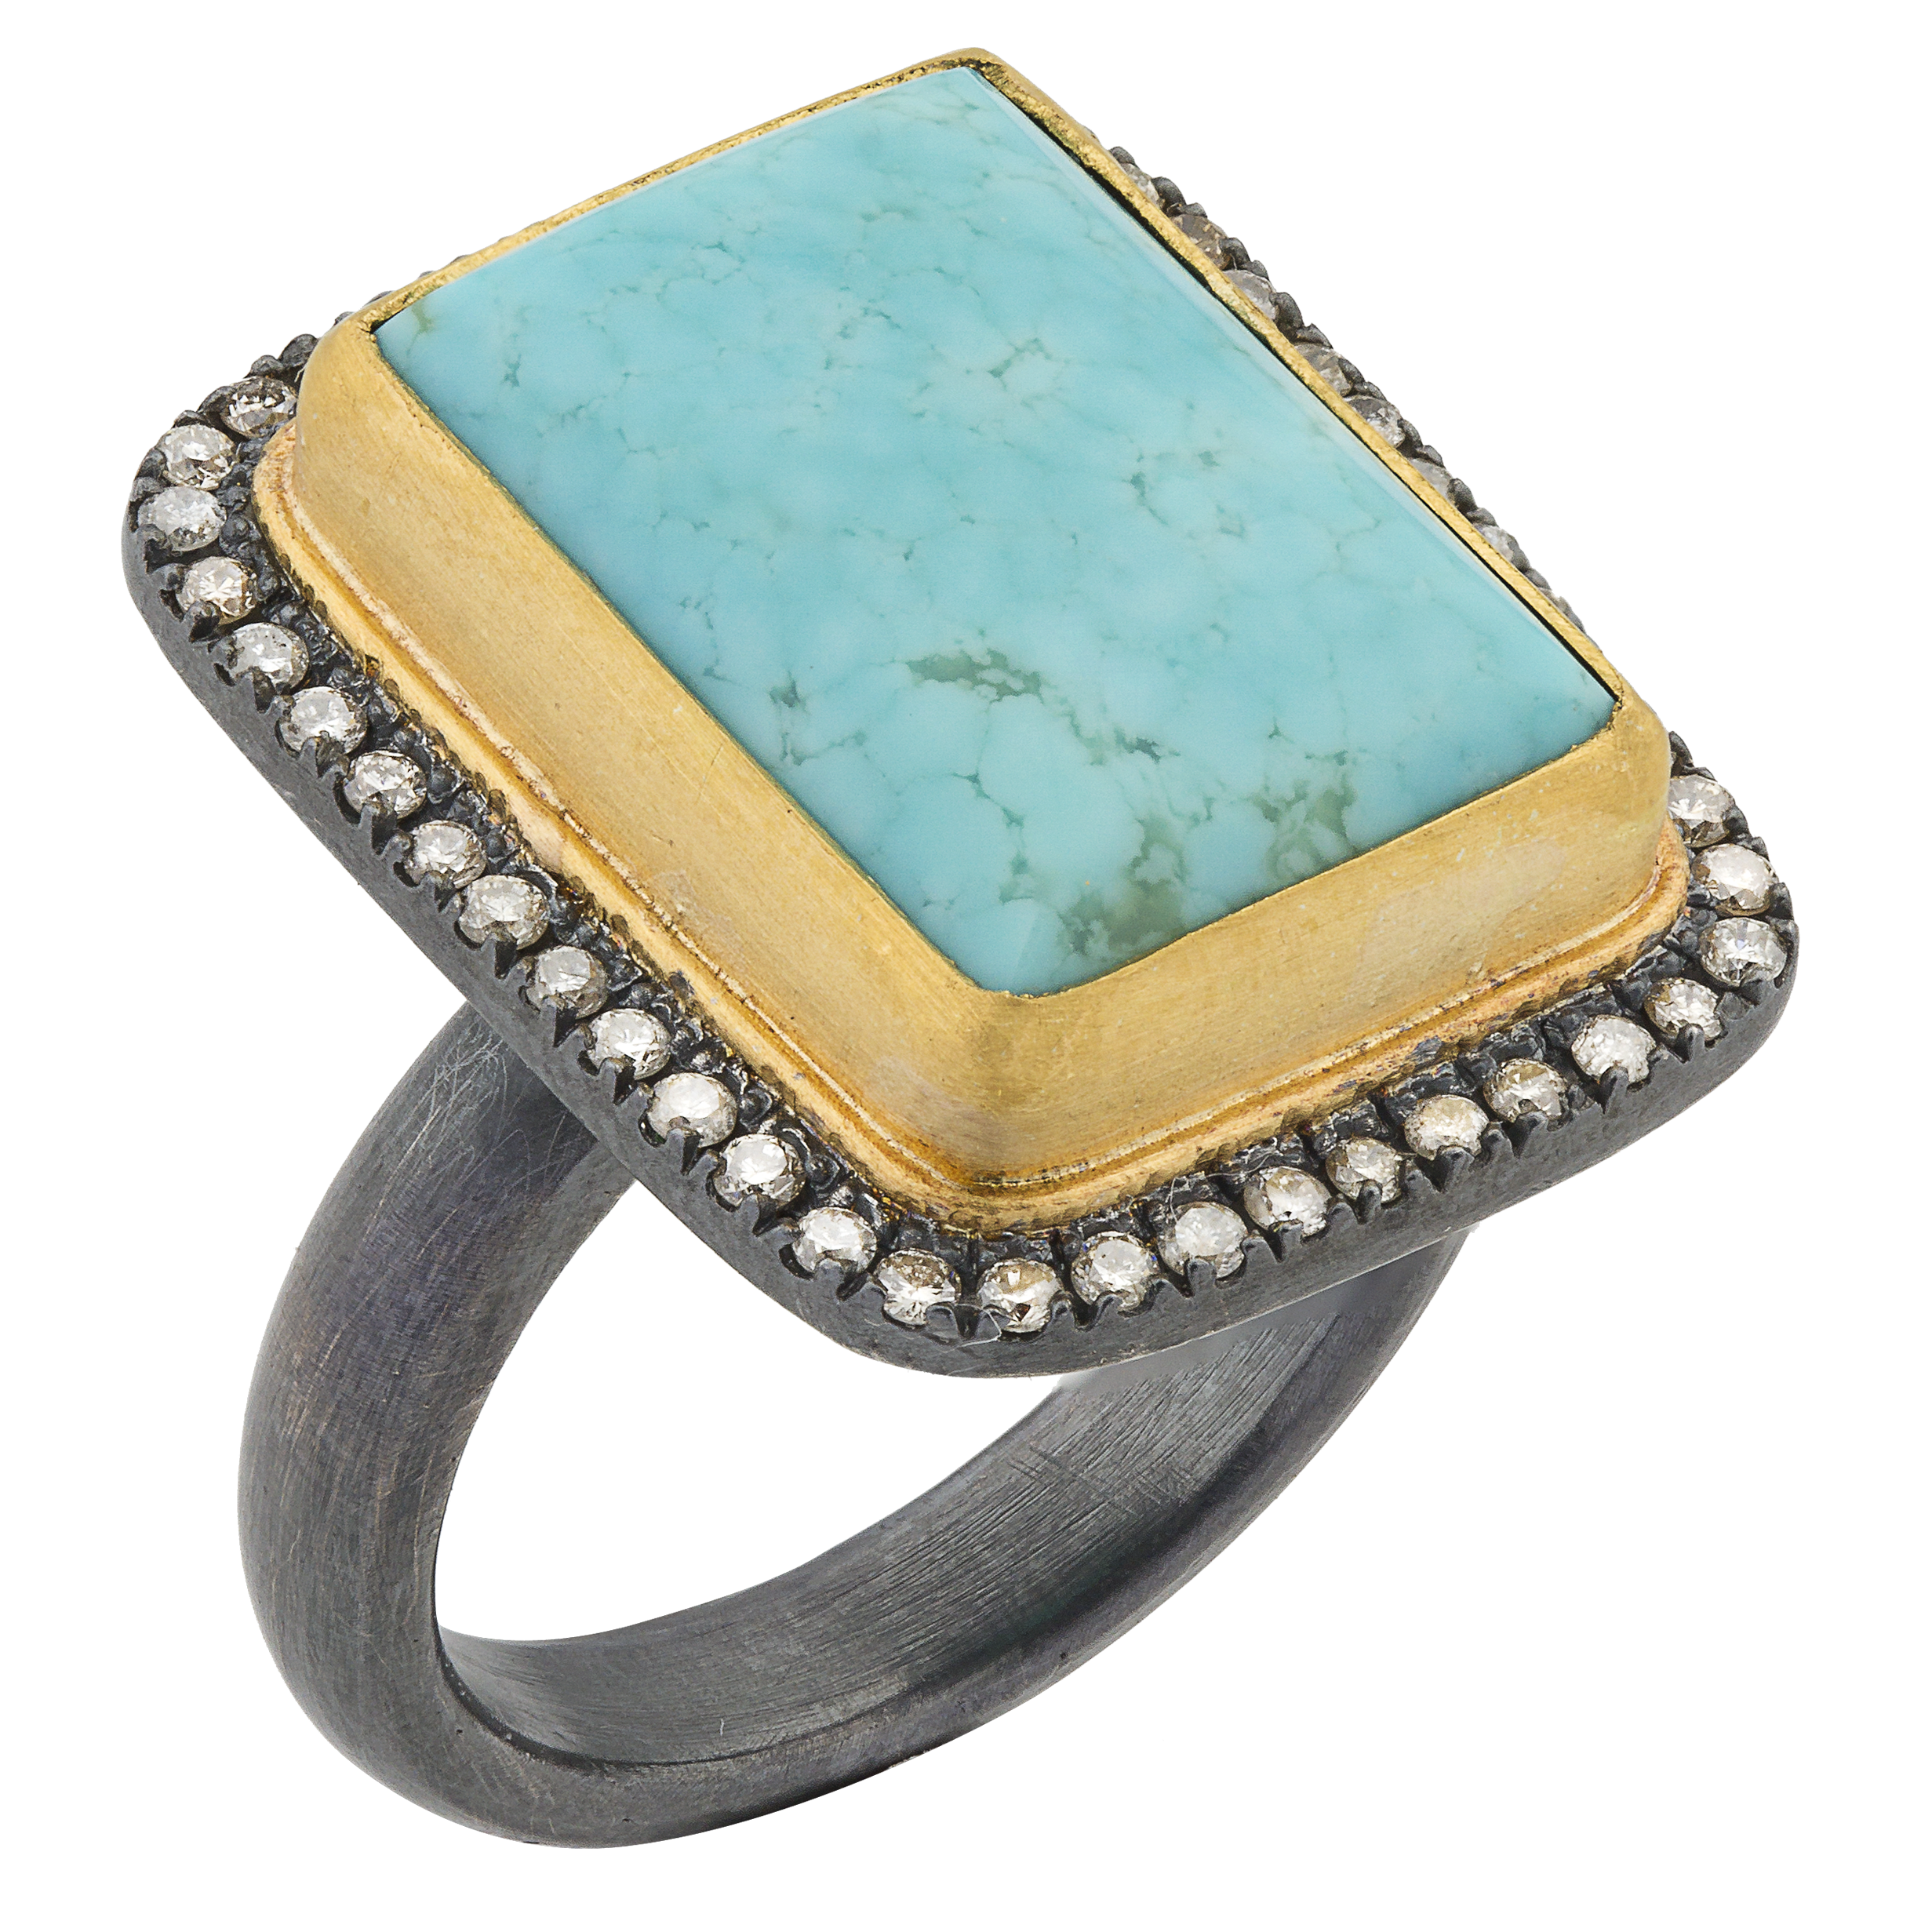 "Lika Behar ""My World"" Ring in 24K Gold & Oxidized Silver with Rectangle Kingman Turquoise & Champagne Diamonds"